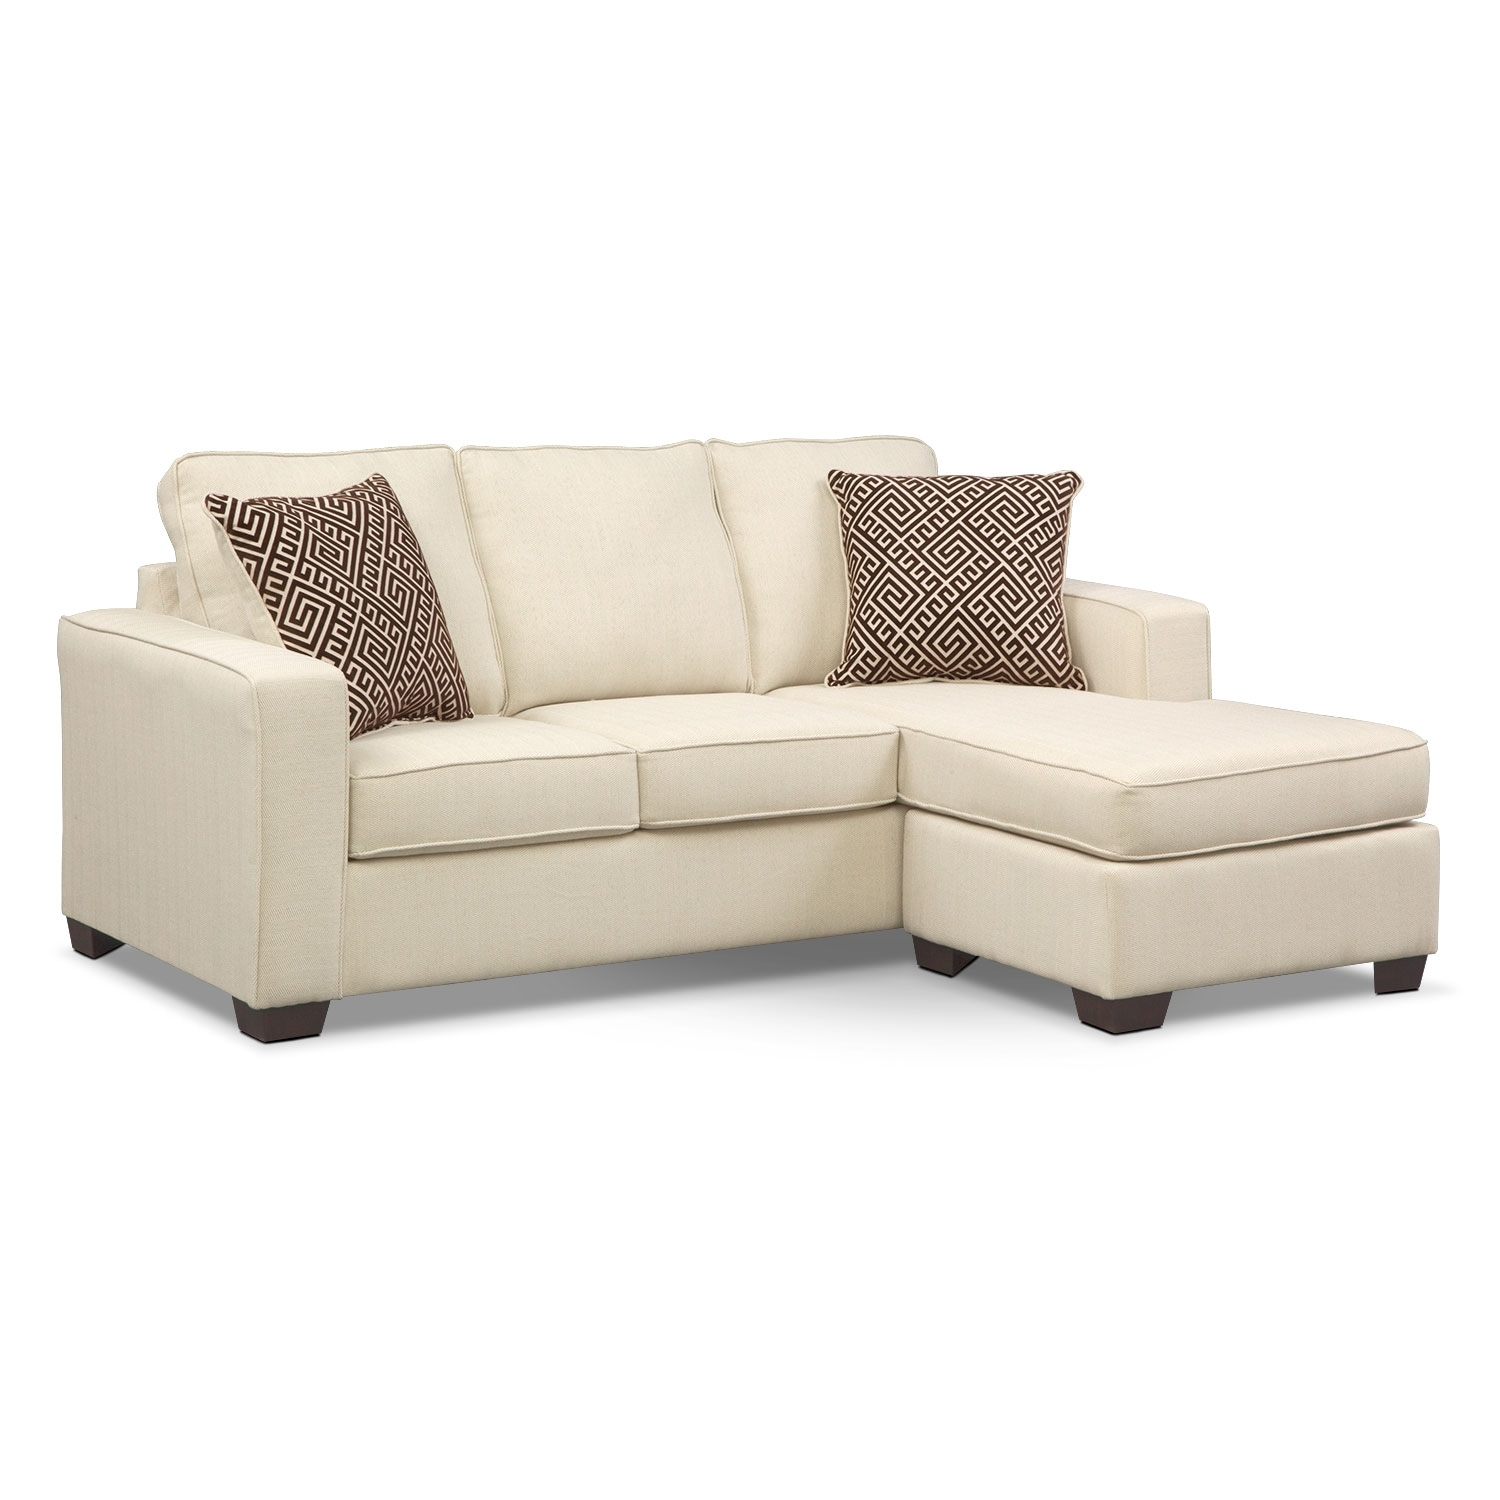 Sterling Innerspring Sleeper Sofa with Chaise - Beige